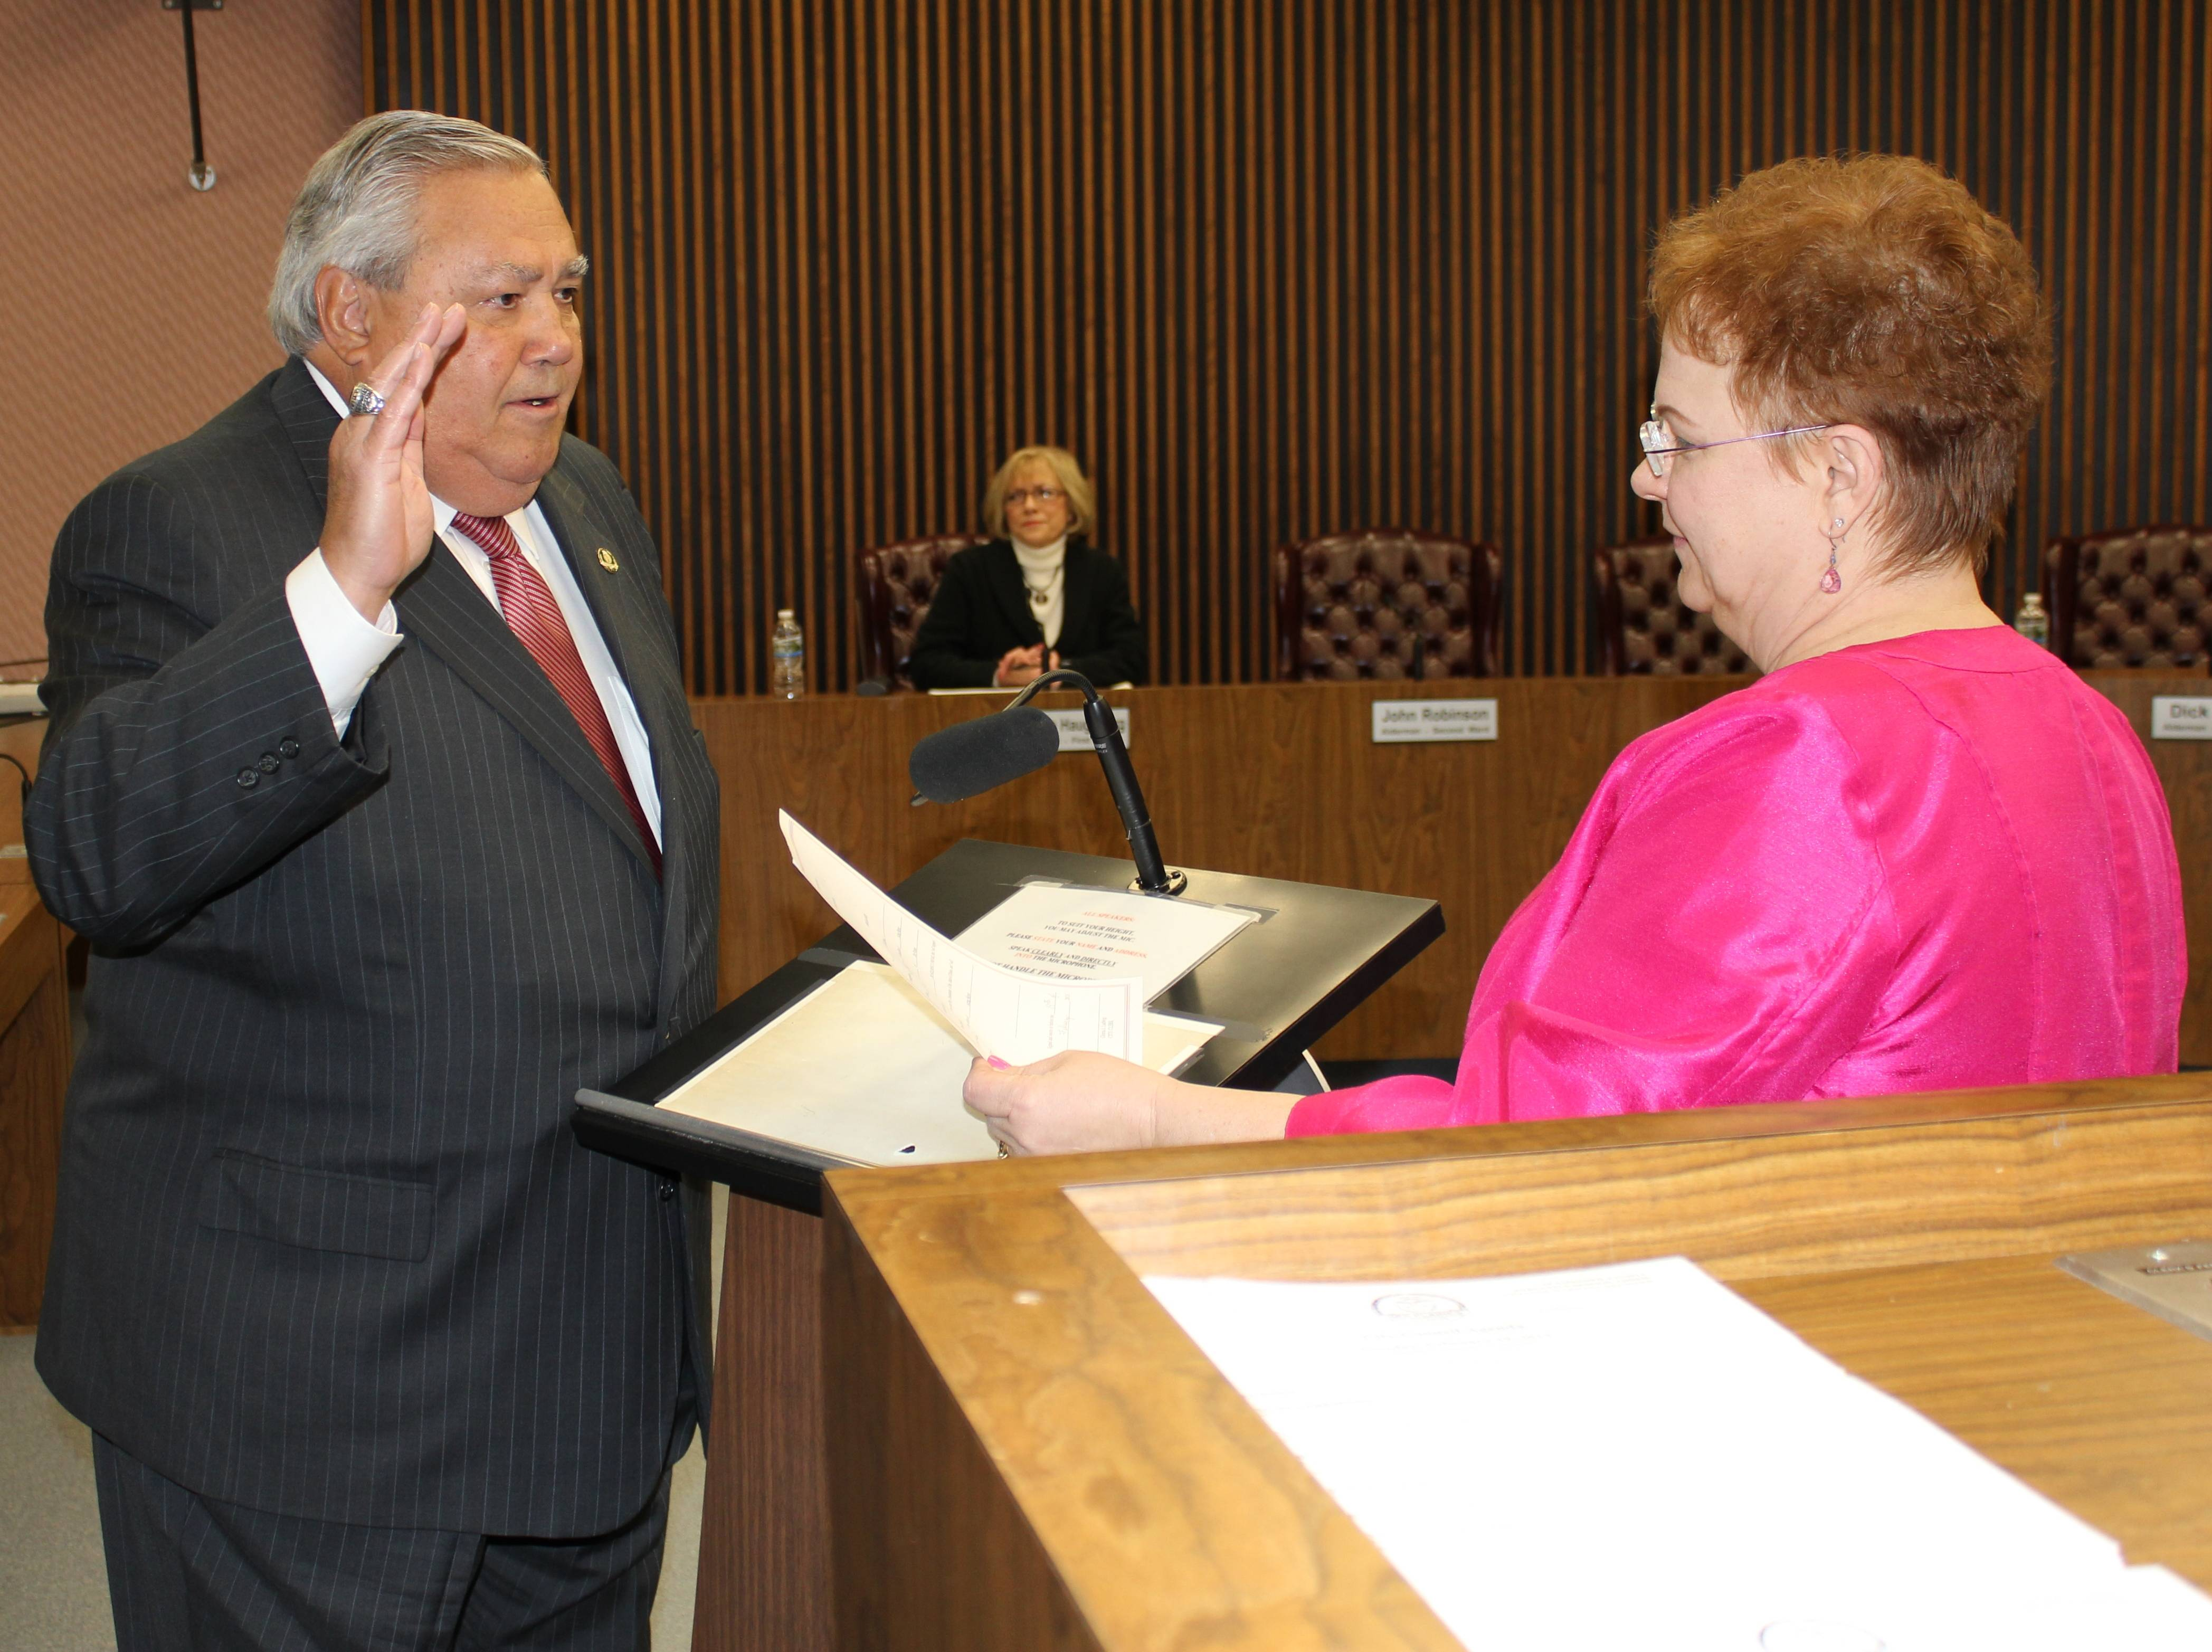 4th Ward Alderman Dick Sayad is sworn in as Acting Mayor of the City of Des Plaines by City Clerk Gloria J. Ludwig at the Tuesday, February 19, 2013, City Council Meeting at City Hall.